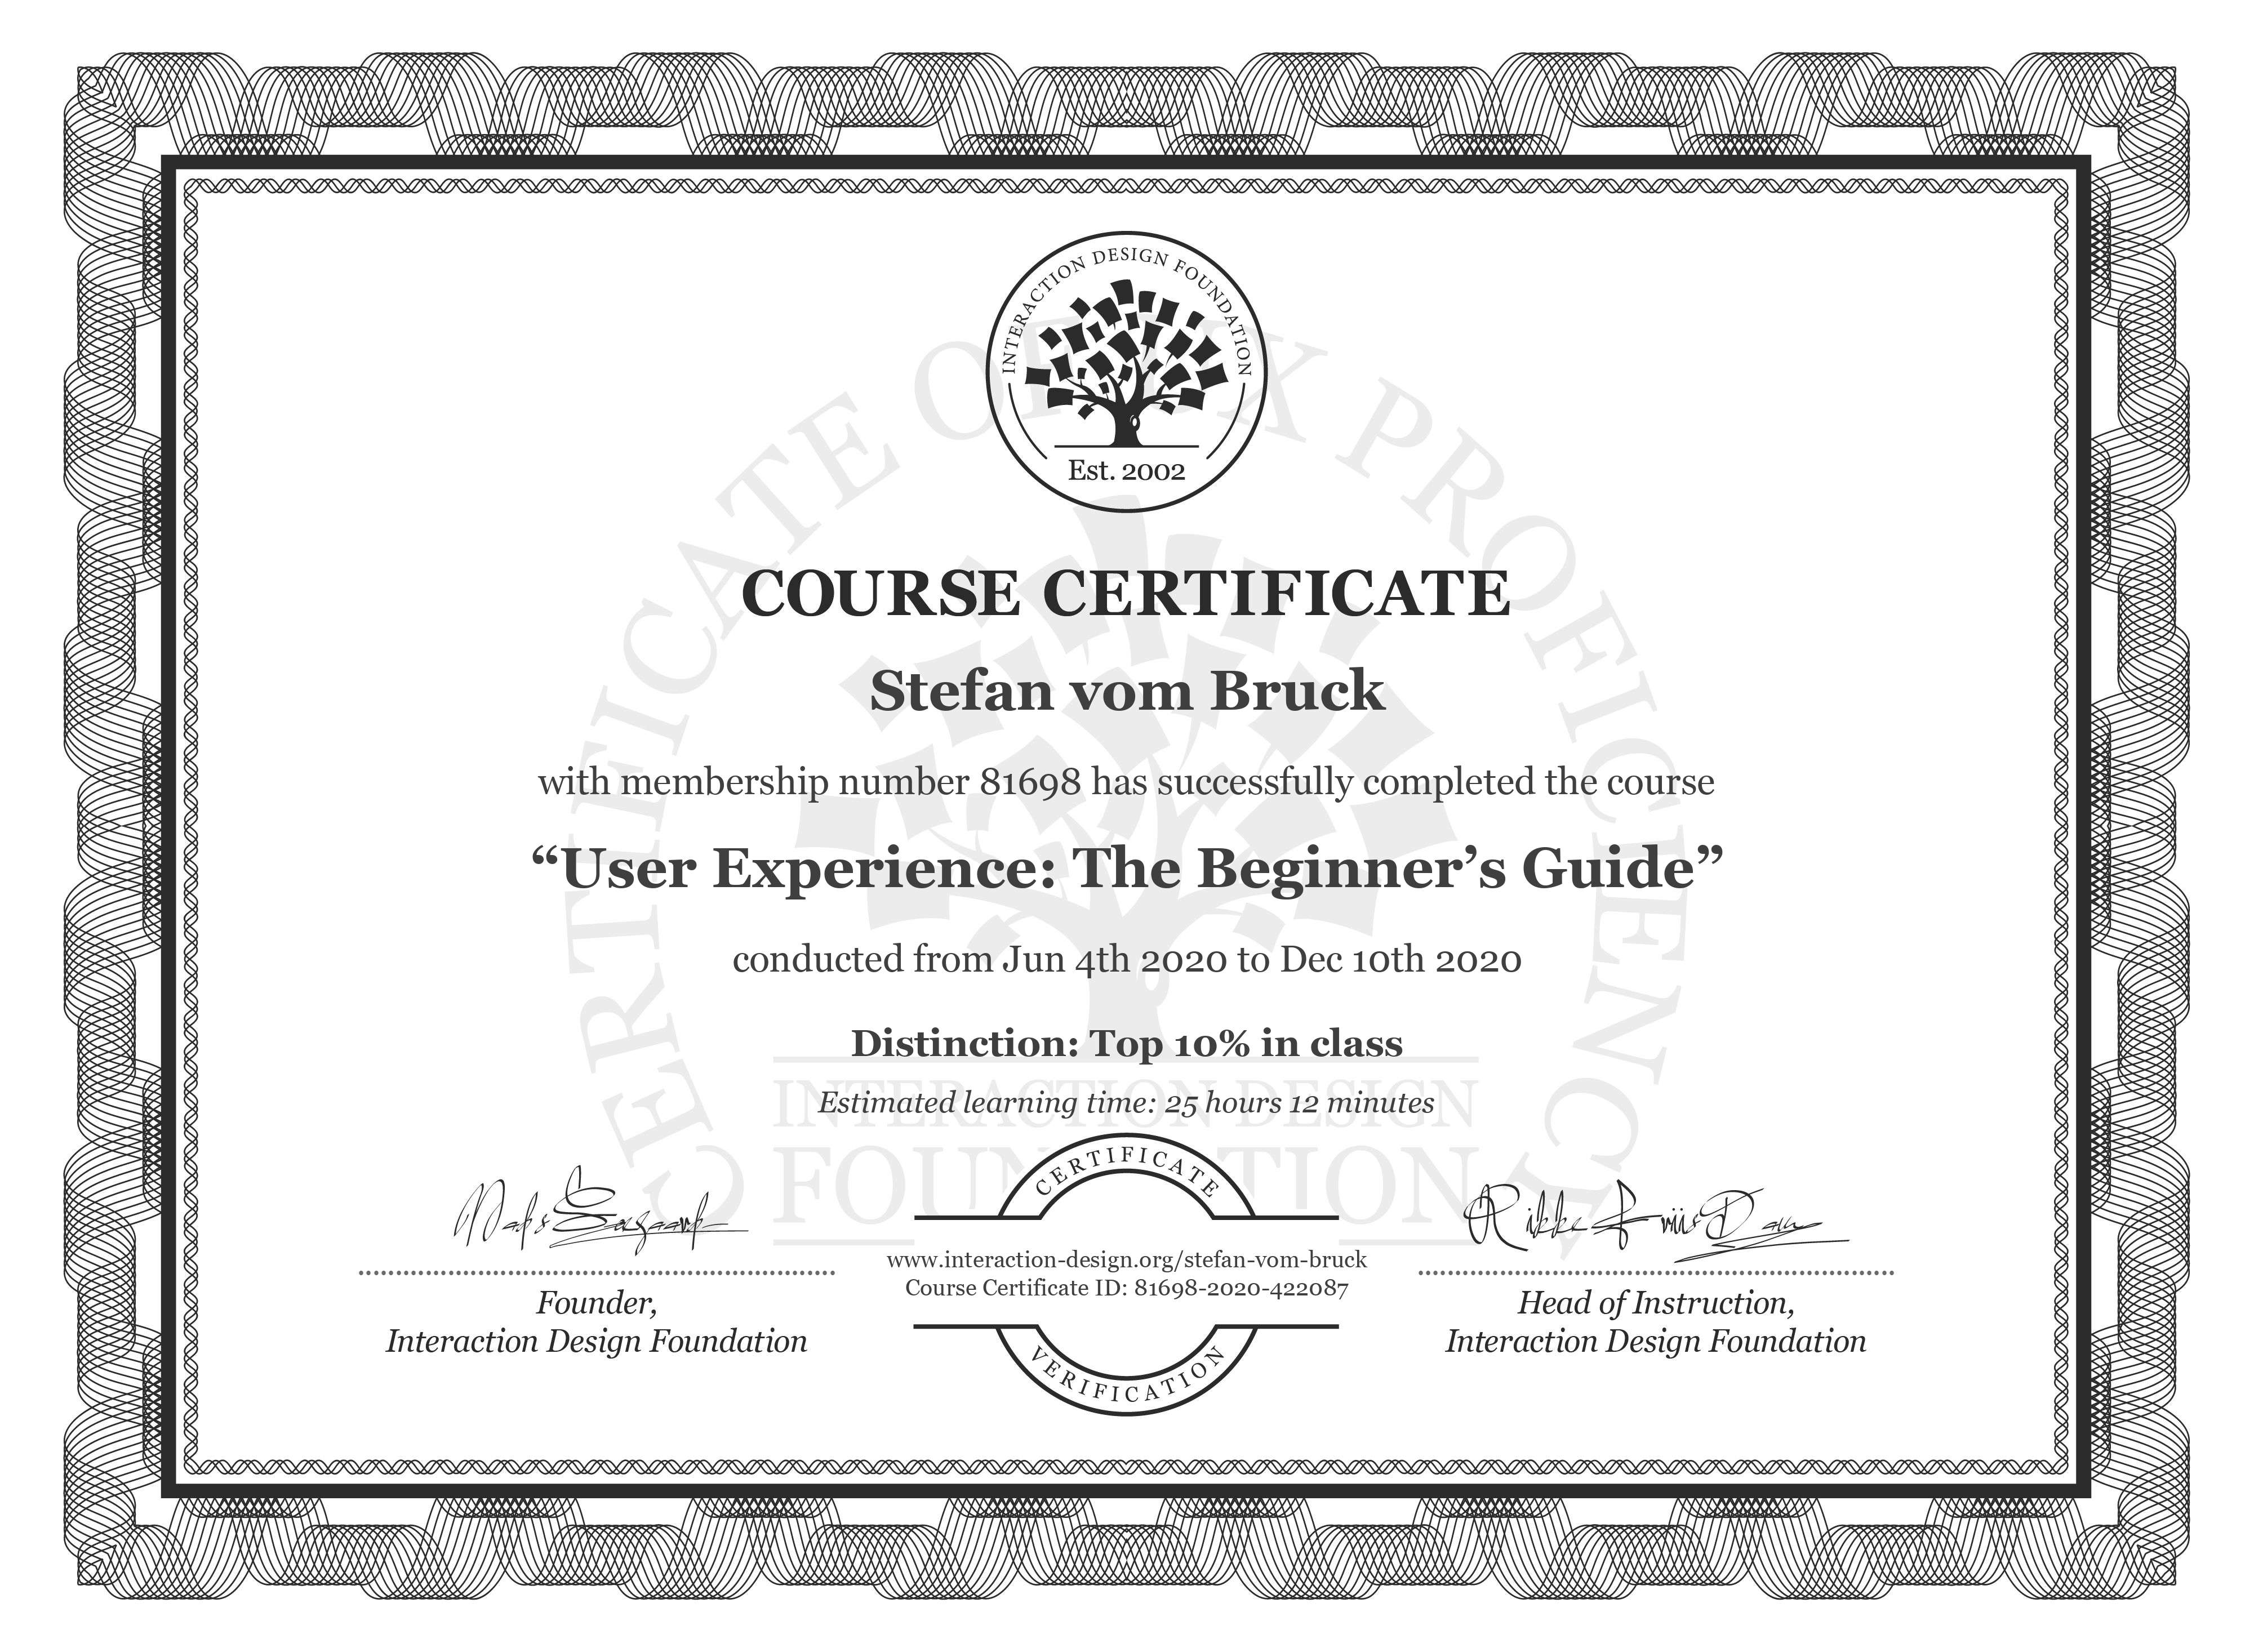 Stefan vom Bruck's Course Certificate: Become a UX Designer from Scratch